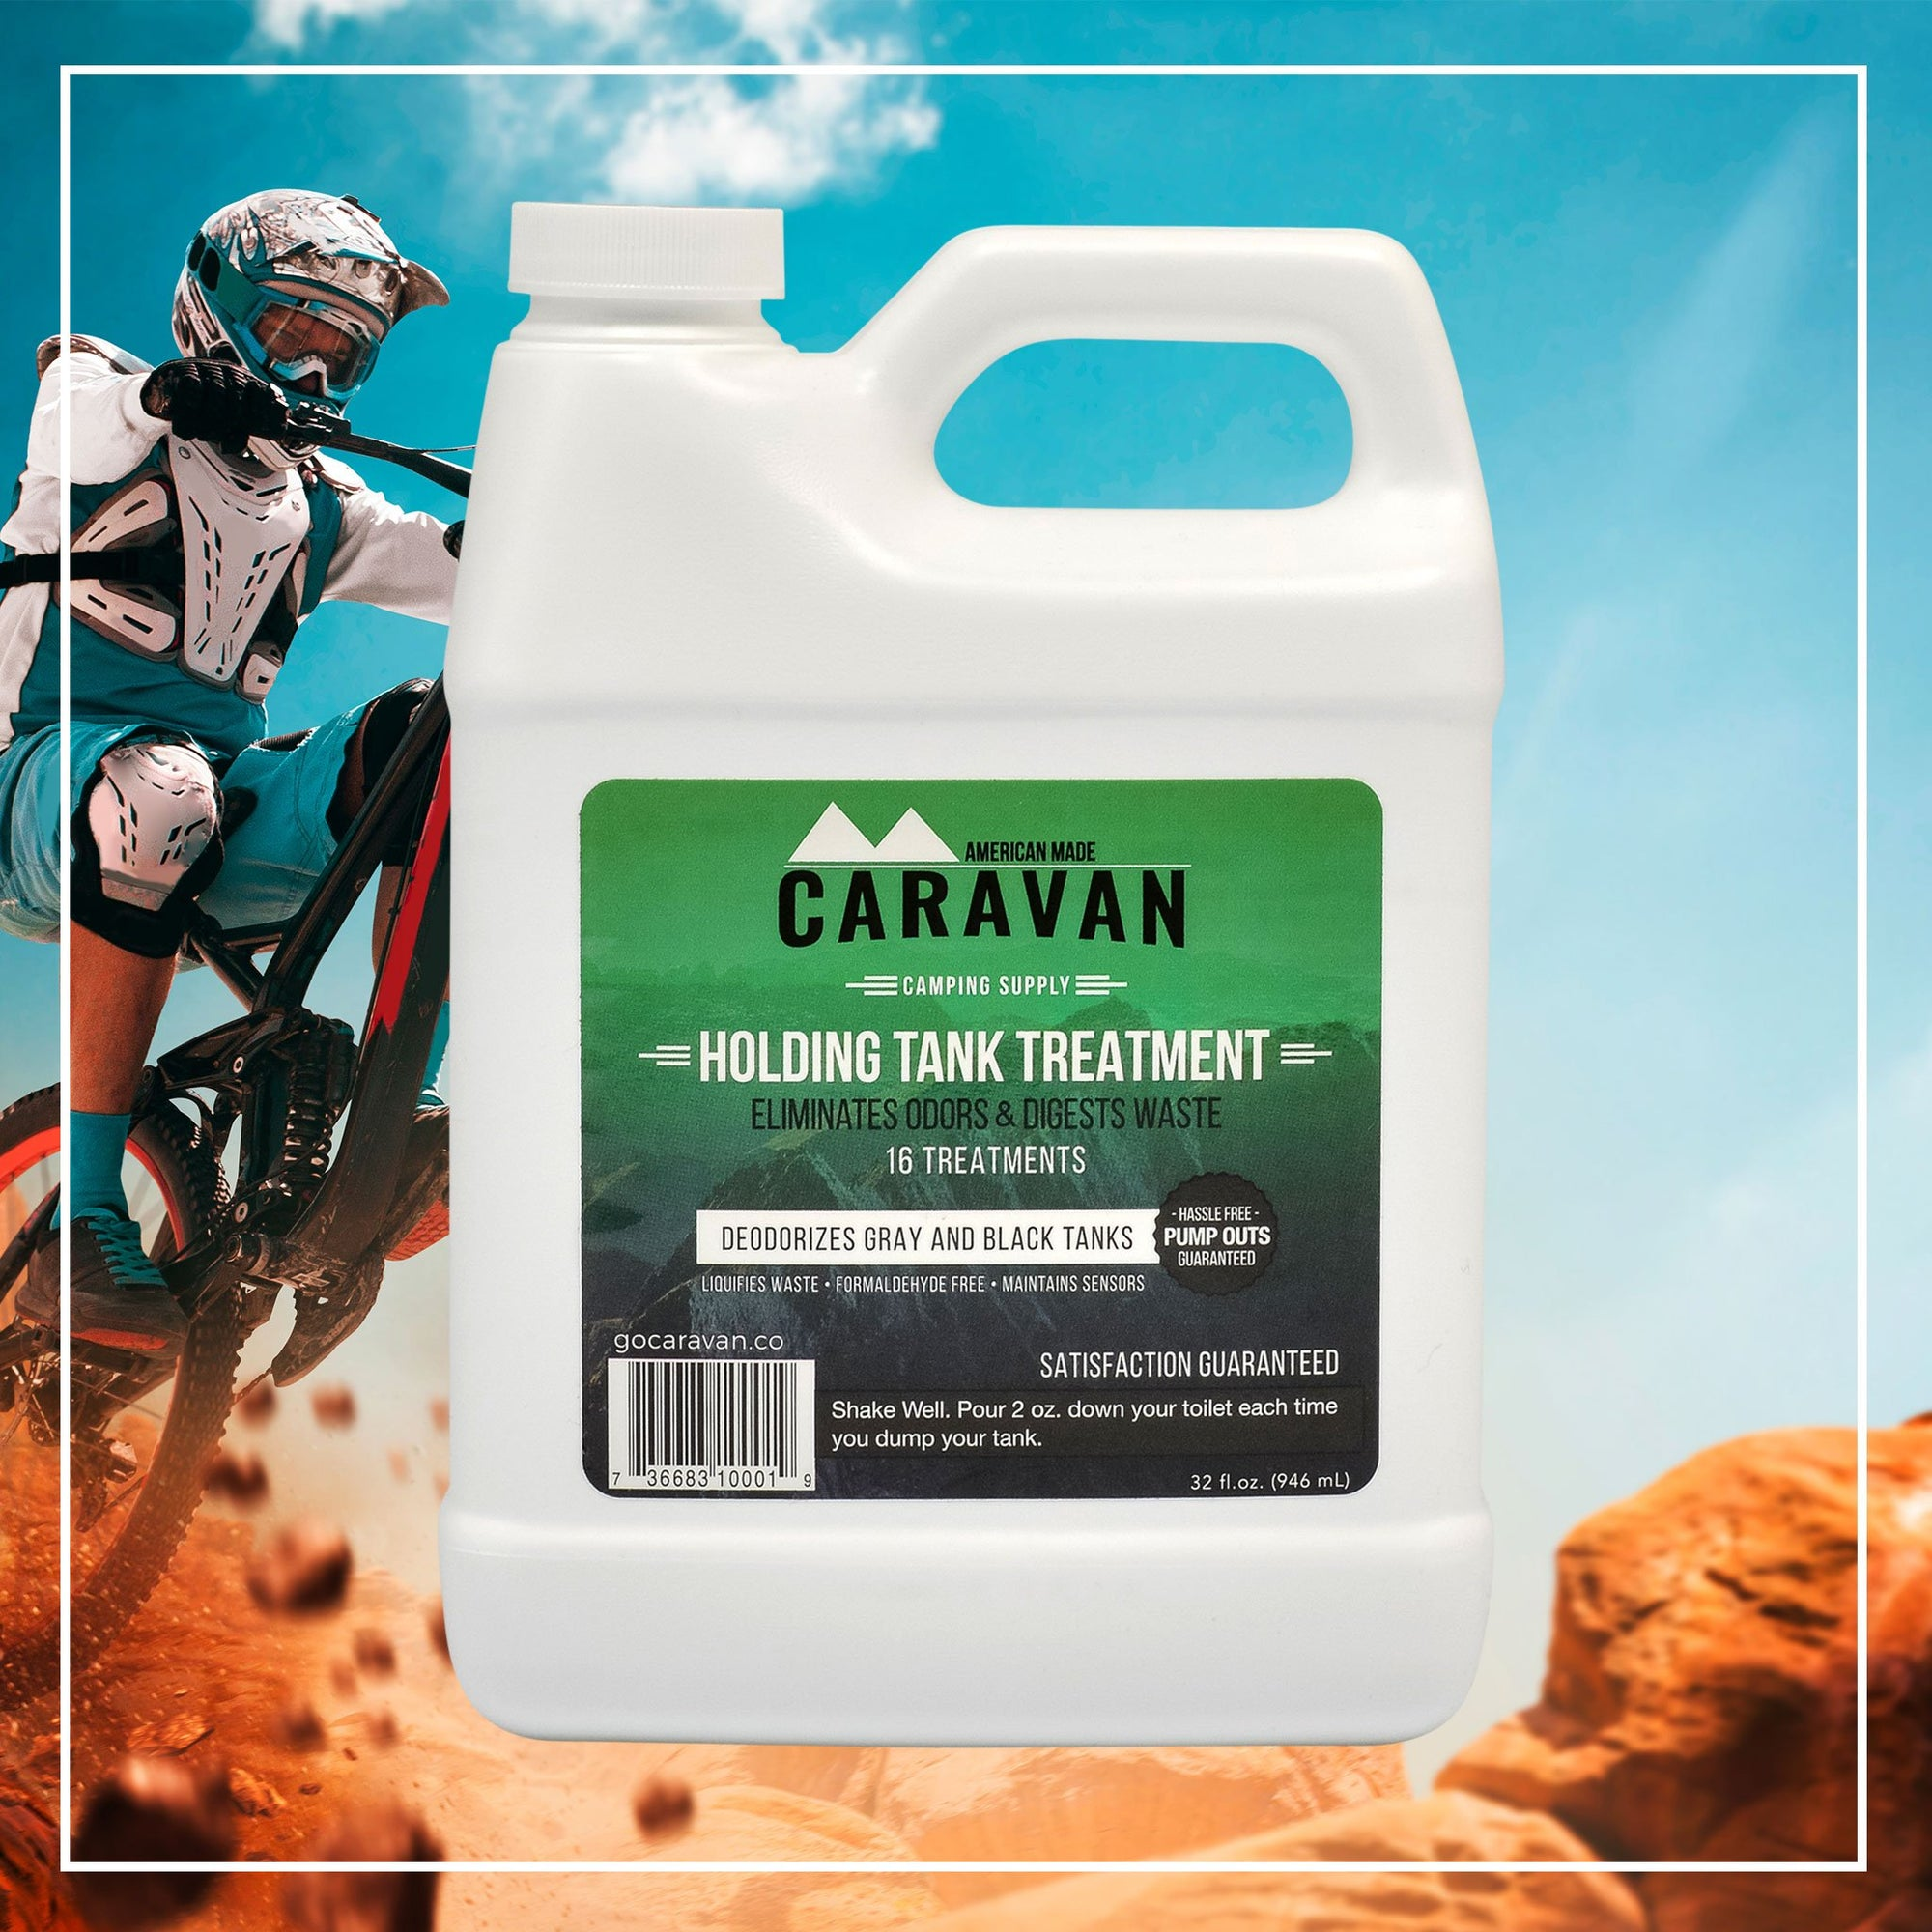 Caravan Holding Tank Treatment 16 treatment 32 oz. - eliminates odors and Digests waste